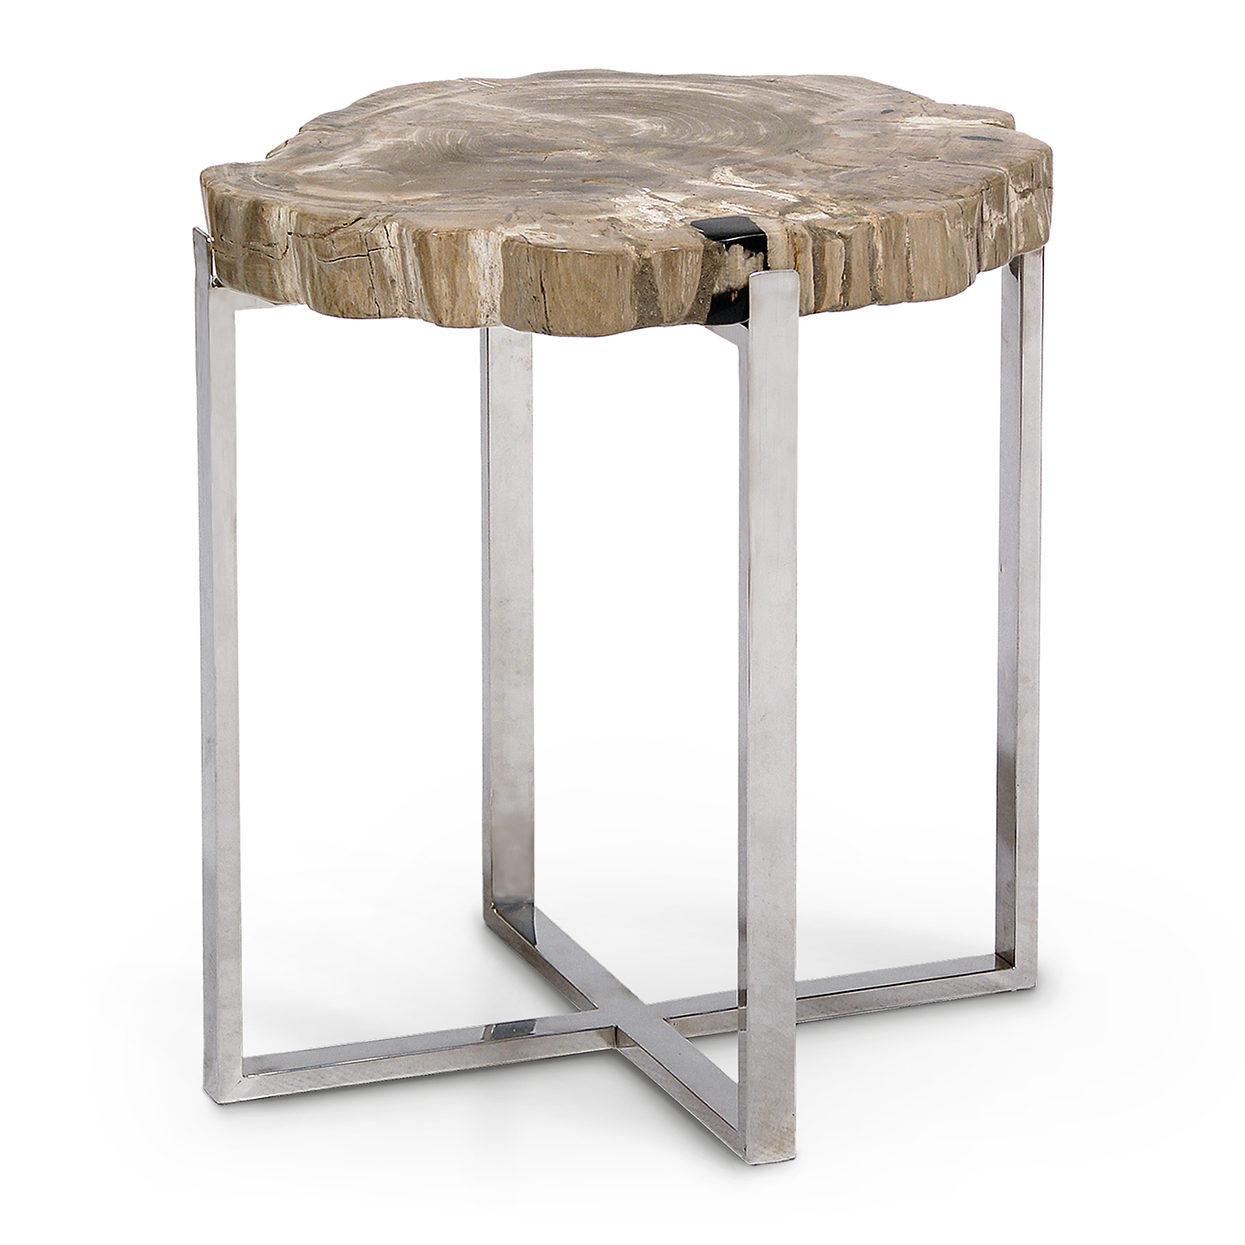 palecek wood accent table sliced petrified large xmas tablecloths and runners hairpin leg pearl drum throne target wall mirrors odd coffee tables bedroom lamp sets oak chairside